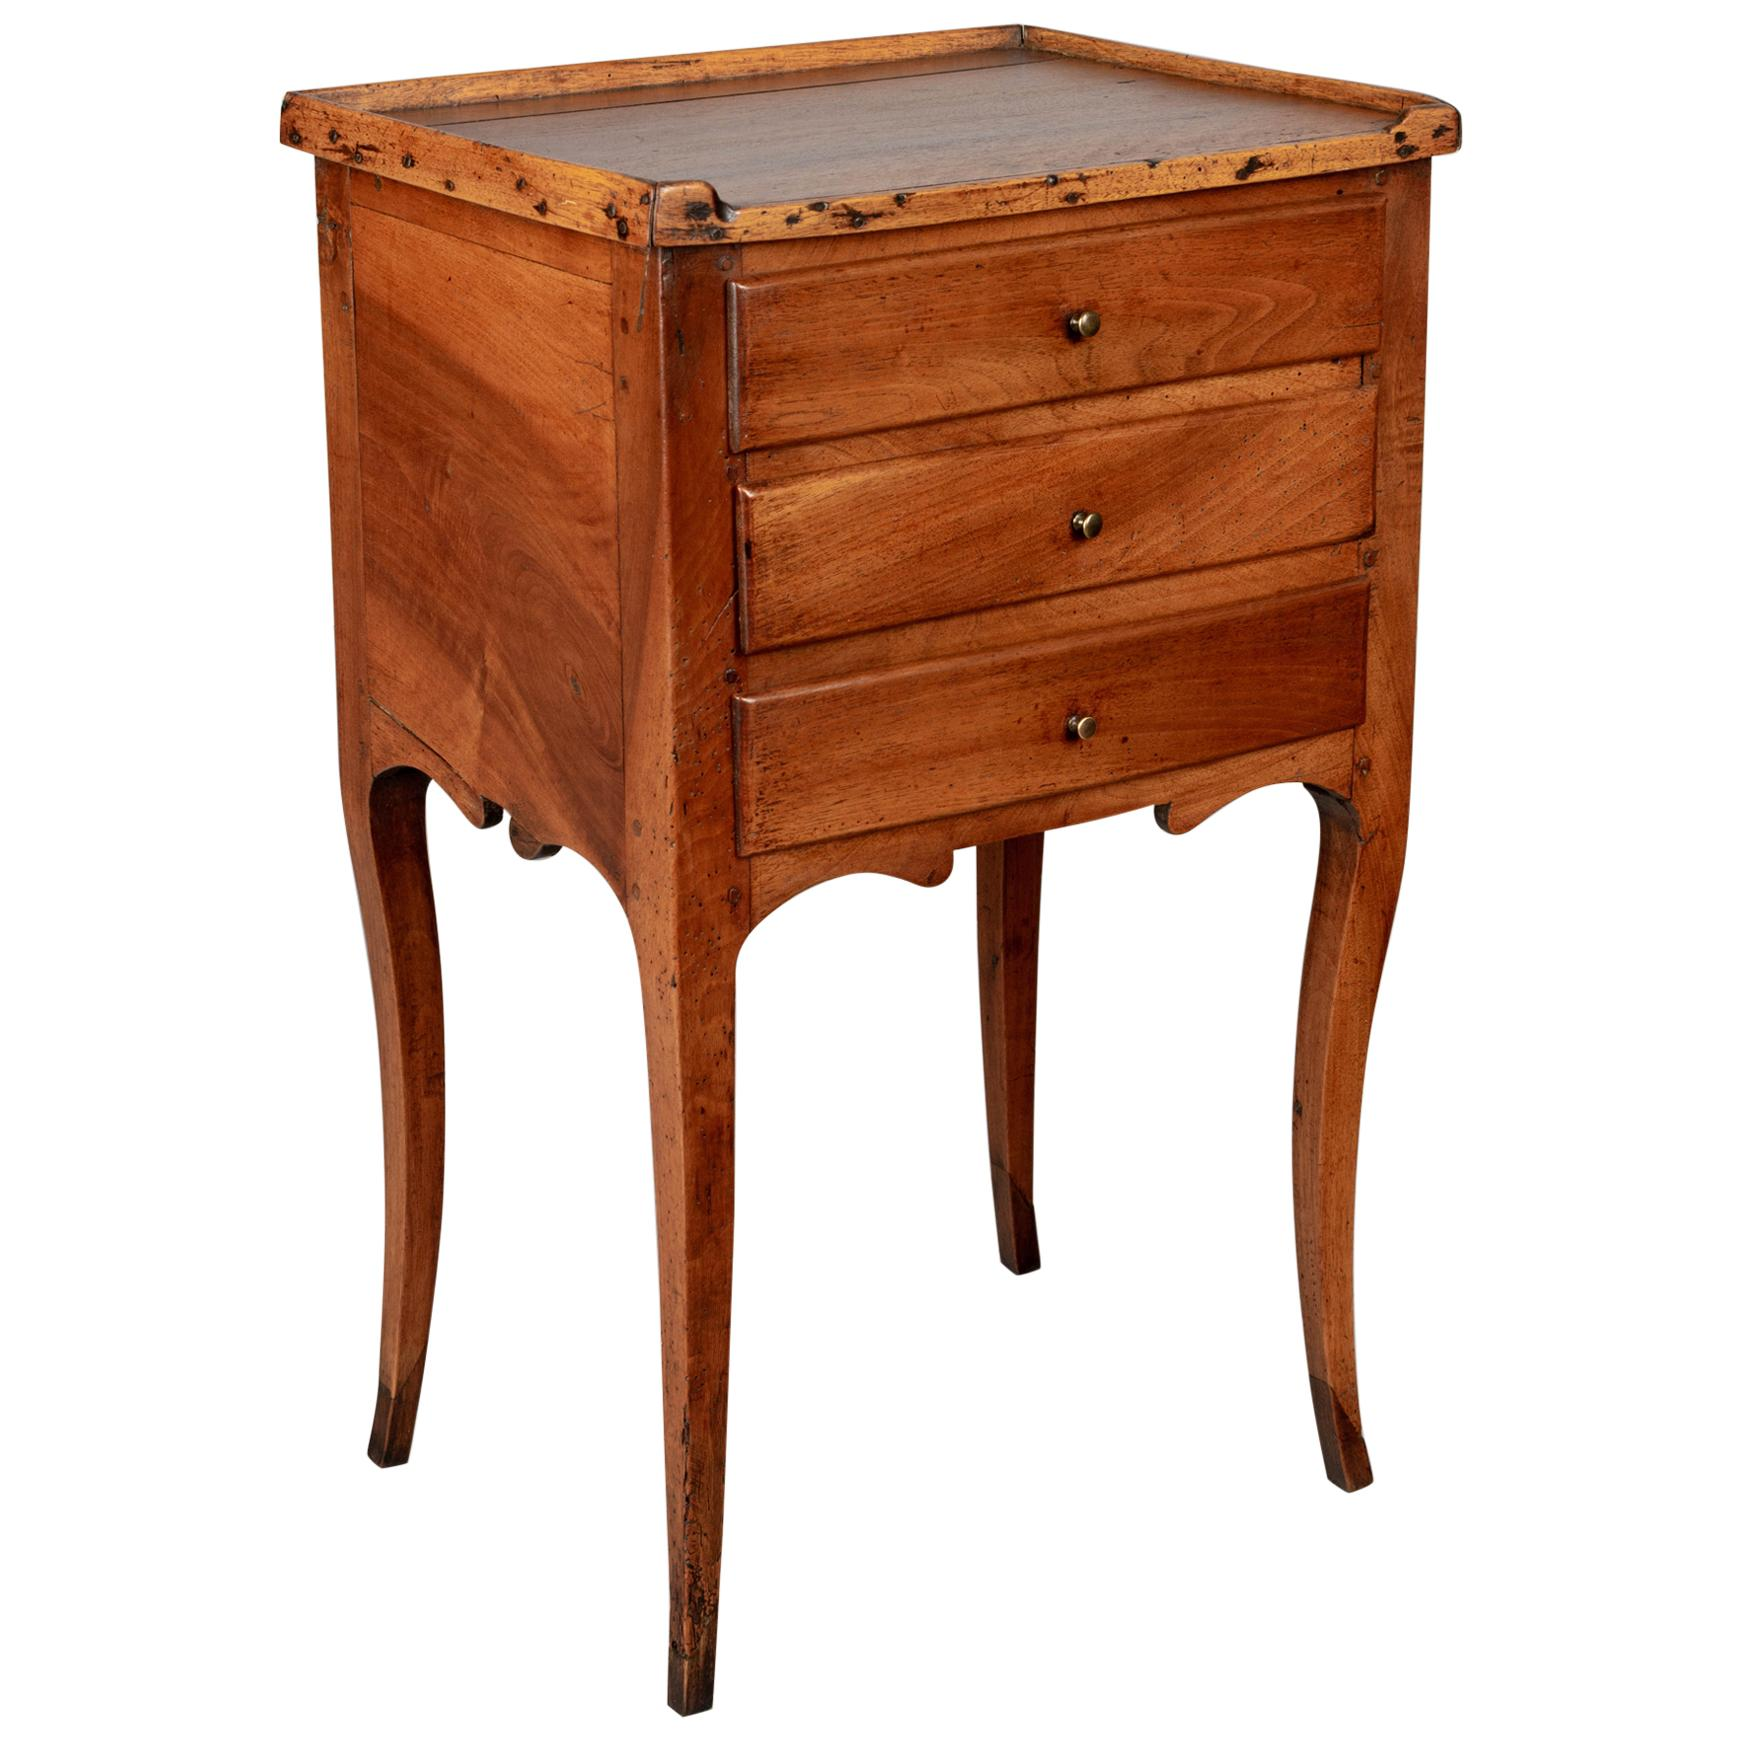 19th Century Louis XV Style Walnut Side Table